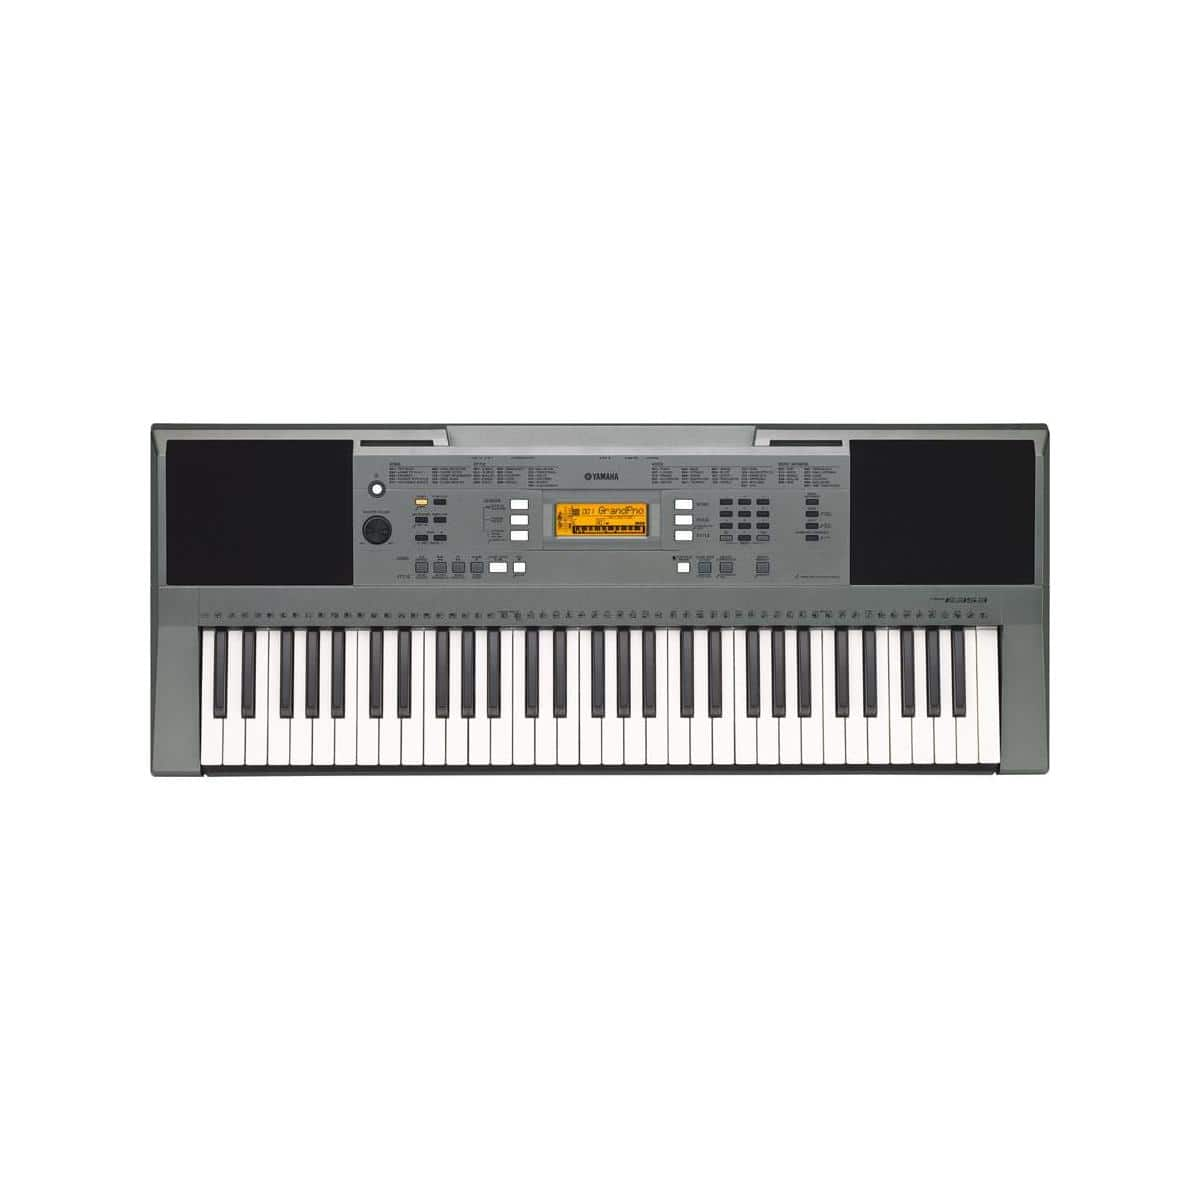 Yamaha PSR-E353 Portable 61-Key Keyboard with LCD Display $120 After $20 Rebate + Free S/H